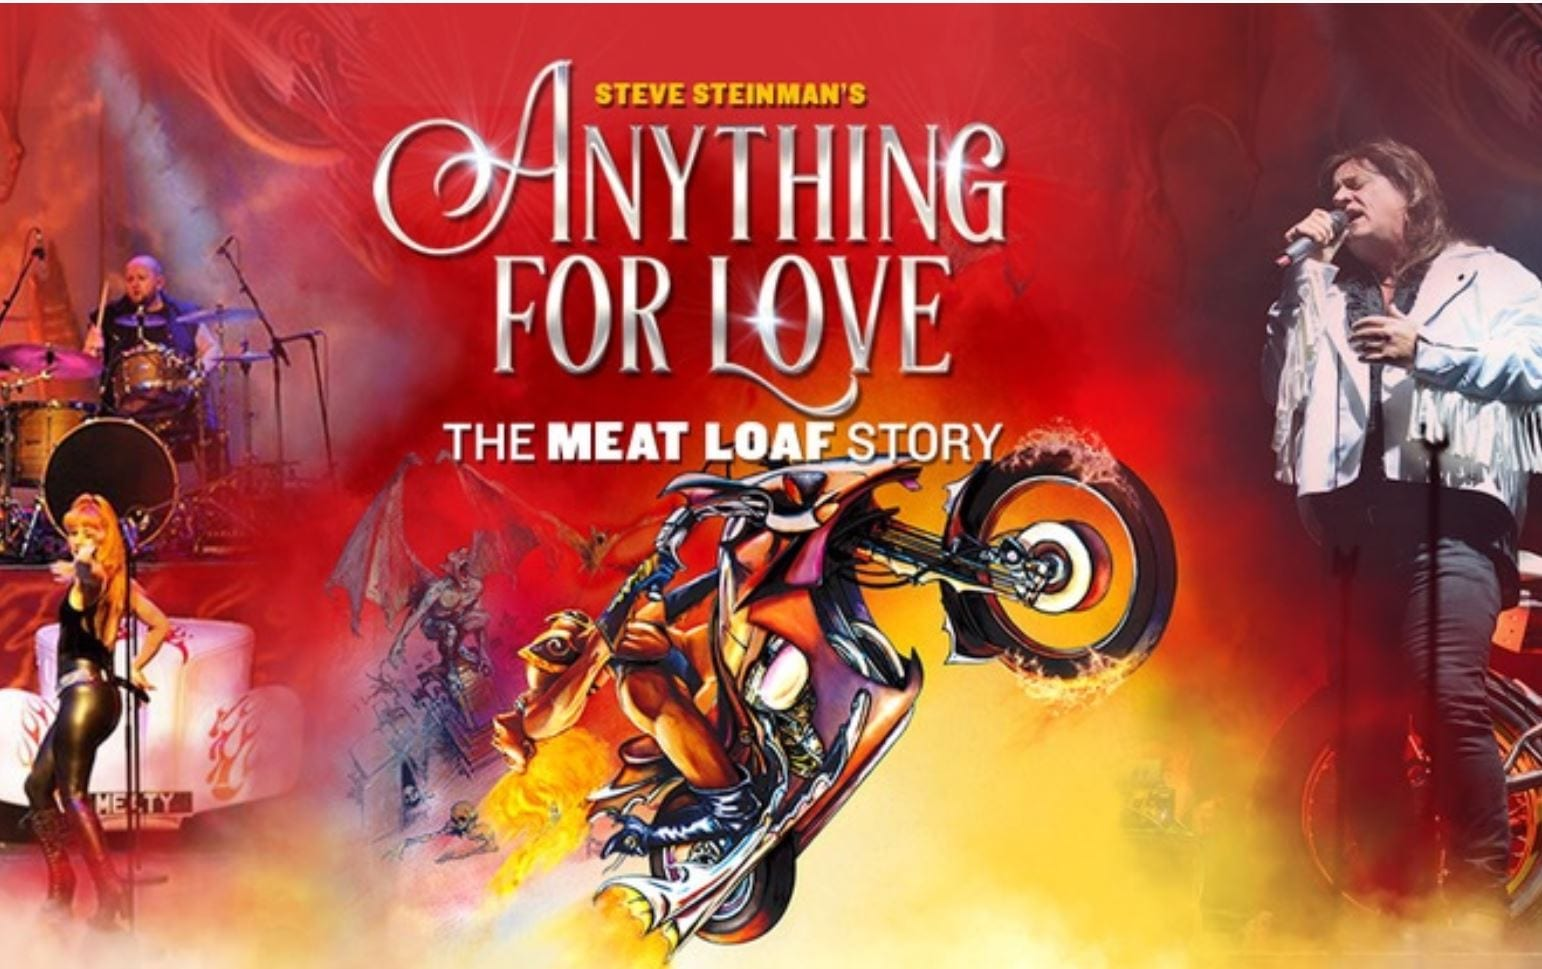 Steve Steinman's Anything For Love at Blackpool Grand Theatre